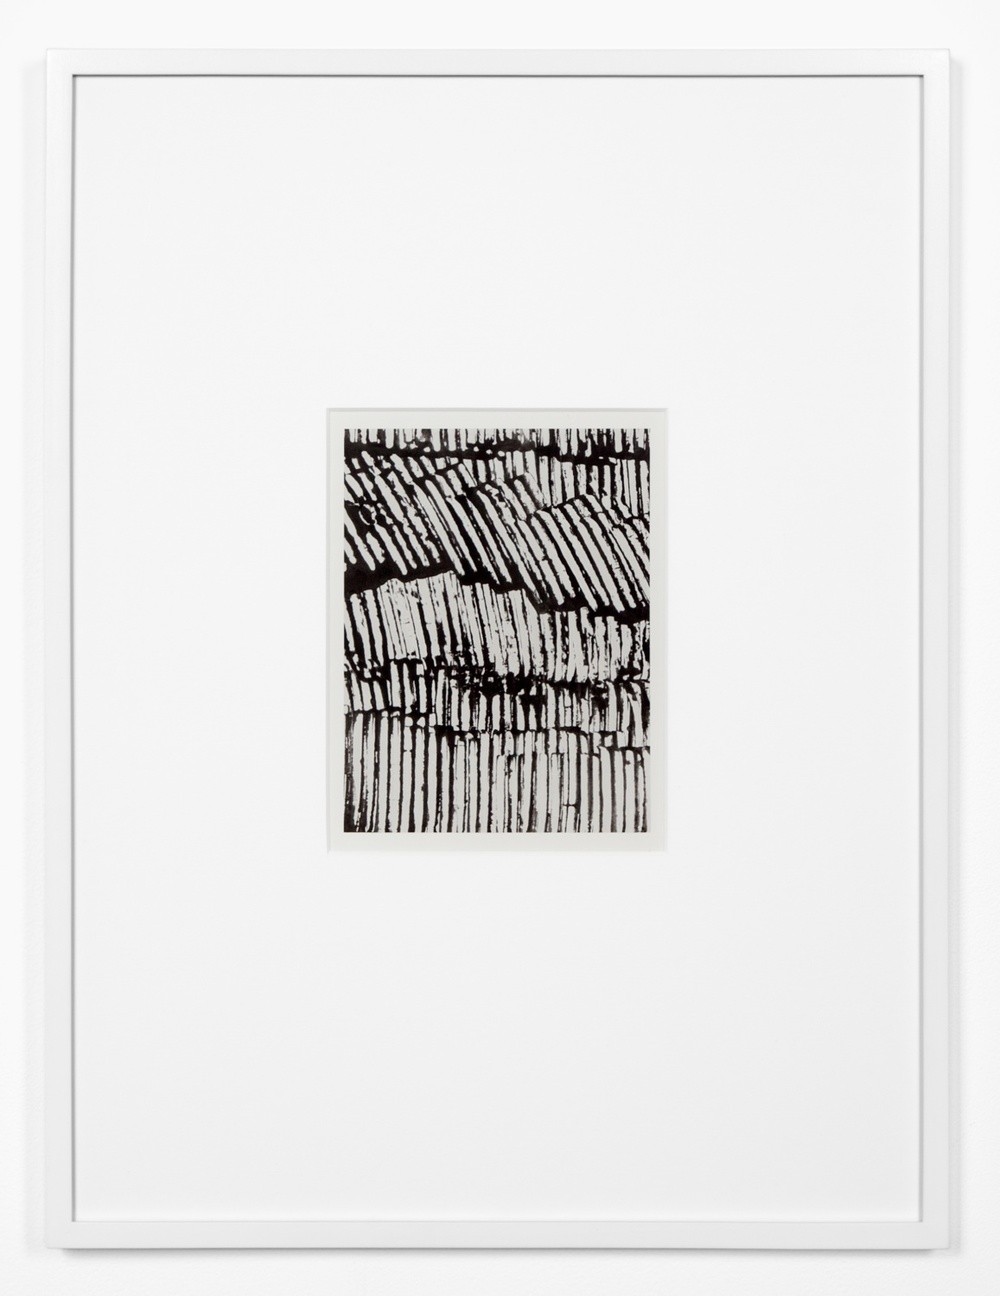 "Anthony Pearson Untitled (Solarization) 2012 Framed solarized silver gelatin photograph 17"" x 12 3/4"" x 1"" AP316"